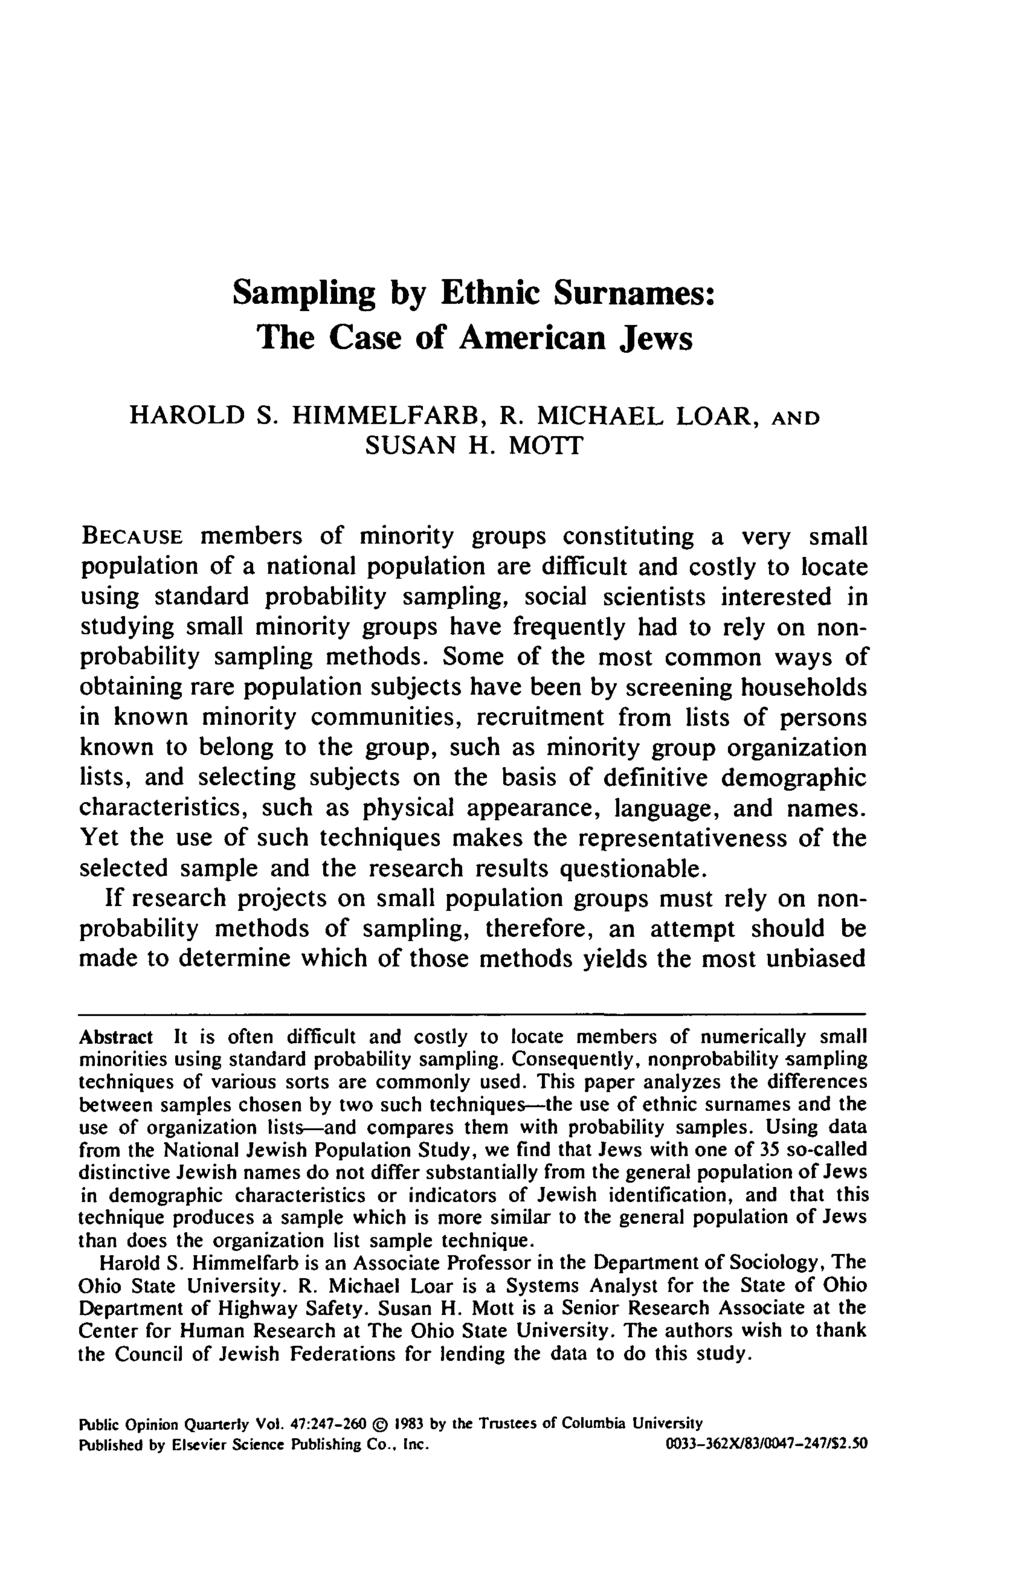 Sampling by Ethnic Surnames: The Case of American Jews HAROLD S. HIMMELFARB, R. MICHAEL LOAR, AND SUSAN H.